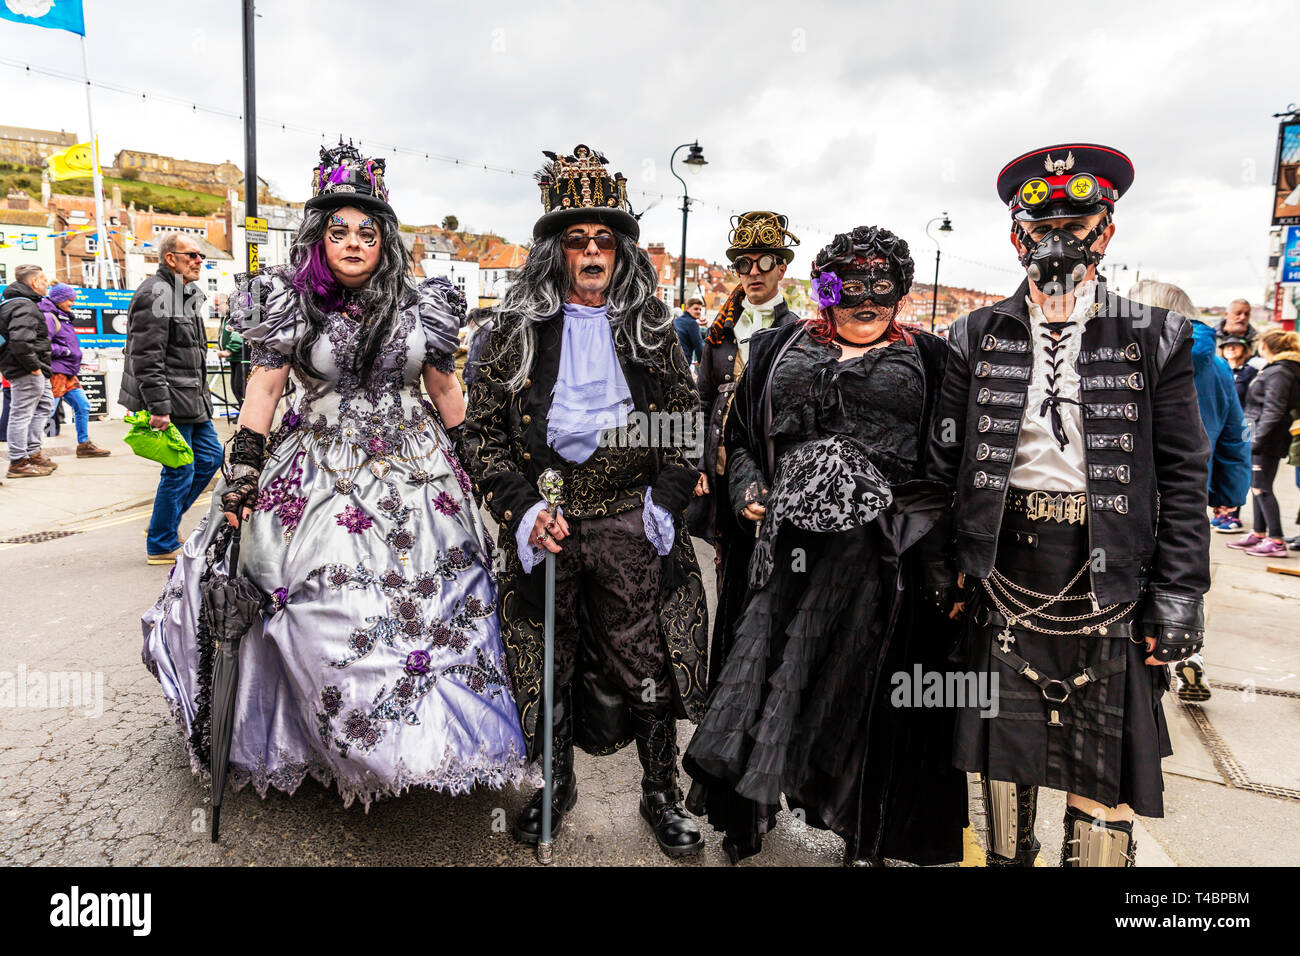 Whitby Goth Weekend 2019, Whitby Goths, Whitby Goth, goth, goths, gothic costume, Whitby, Yorkshire, UK, Goth characters, goth costume, Goth, Goths, Stock Photo